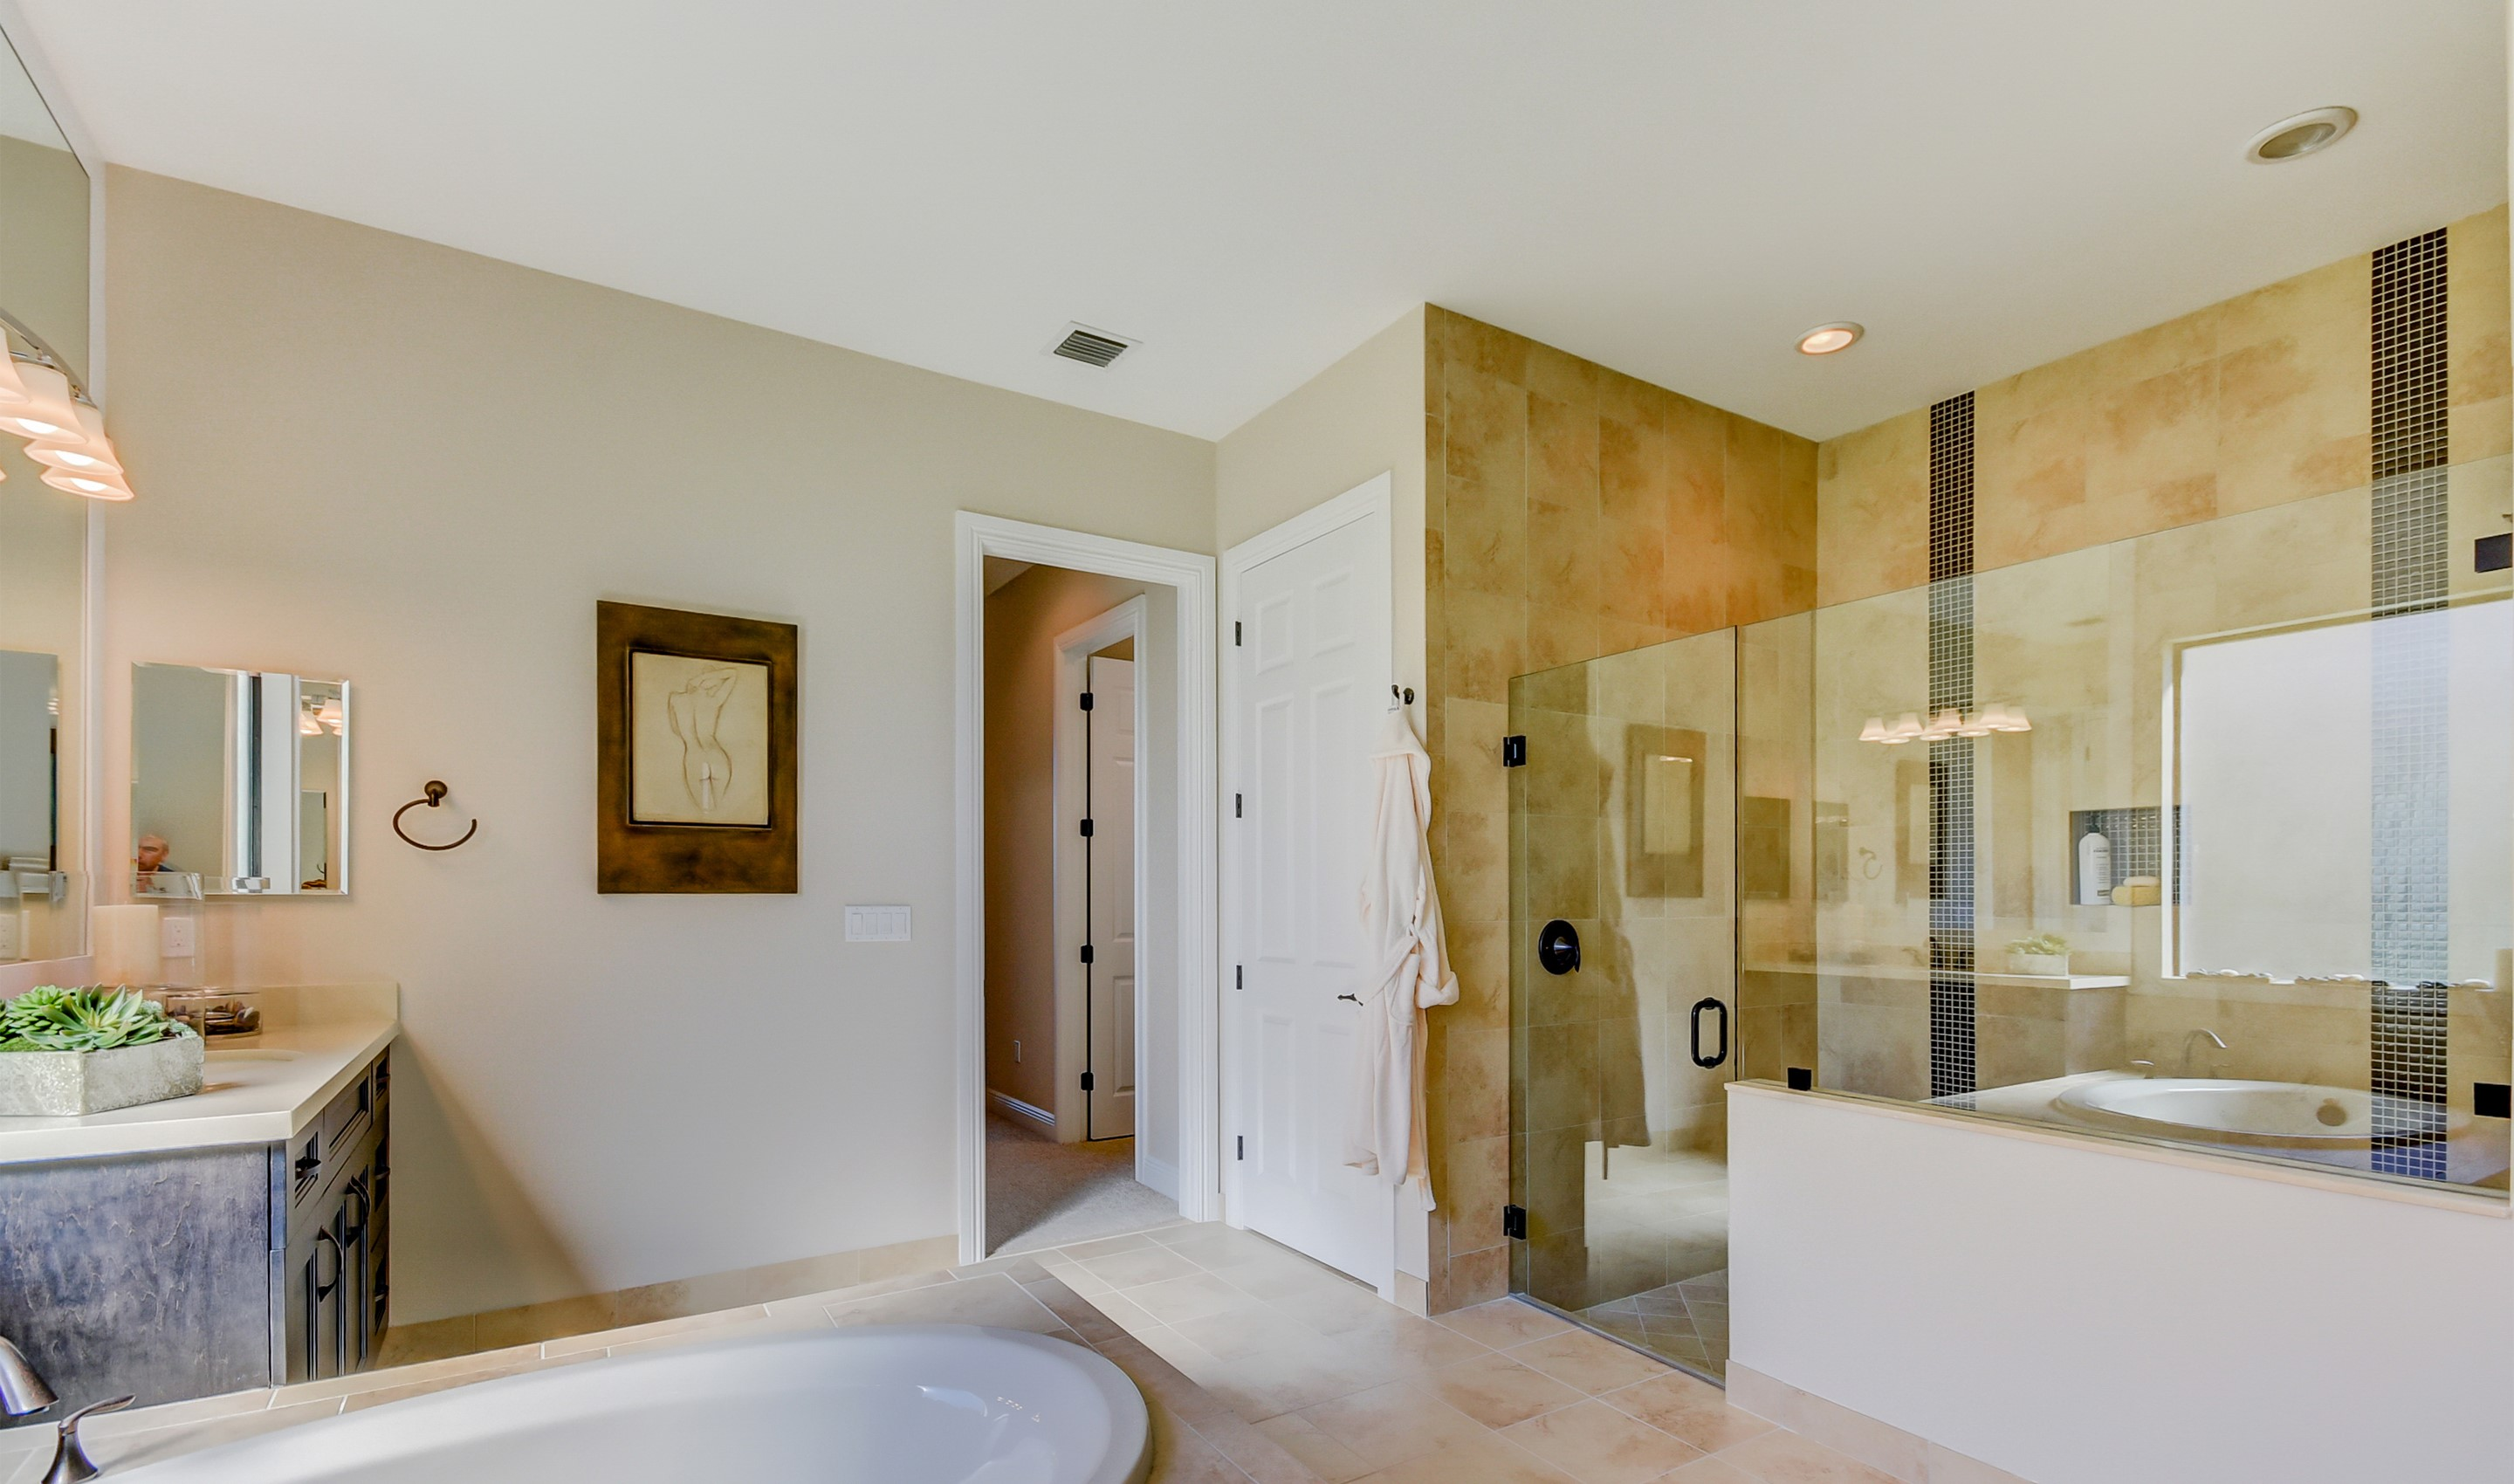 Elegant owner's bath